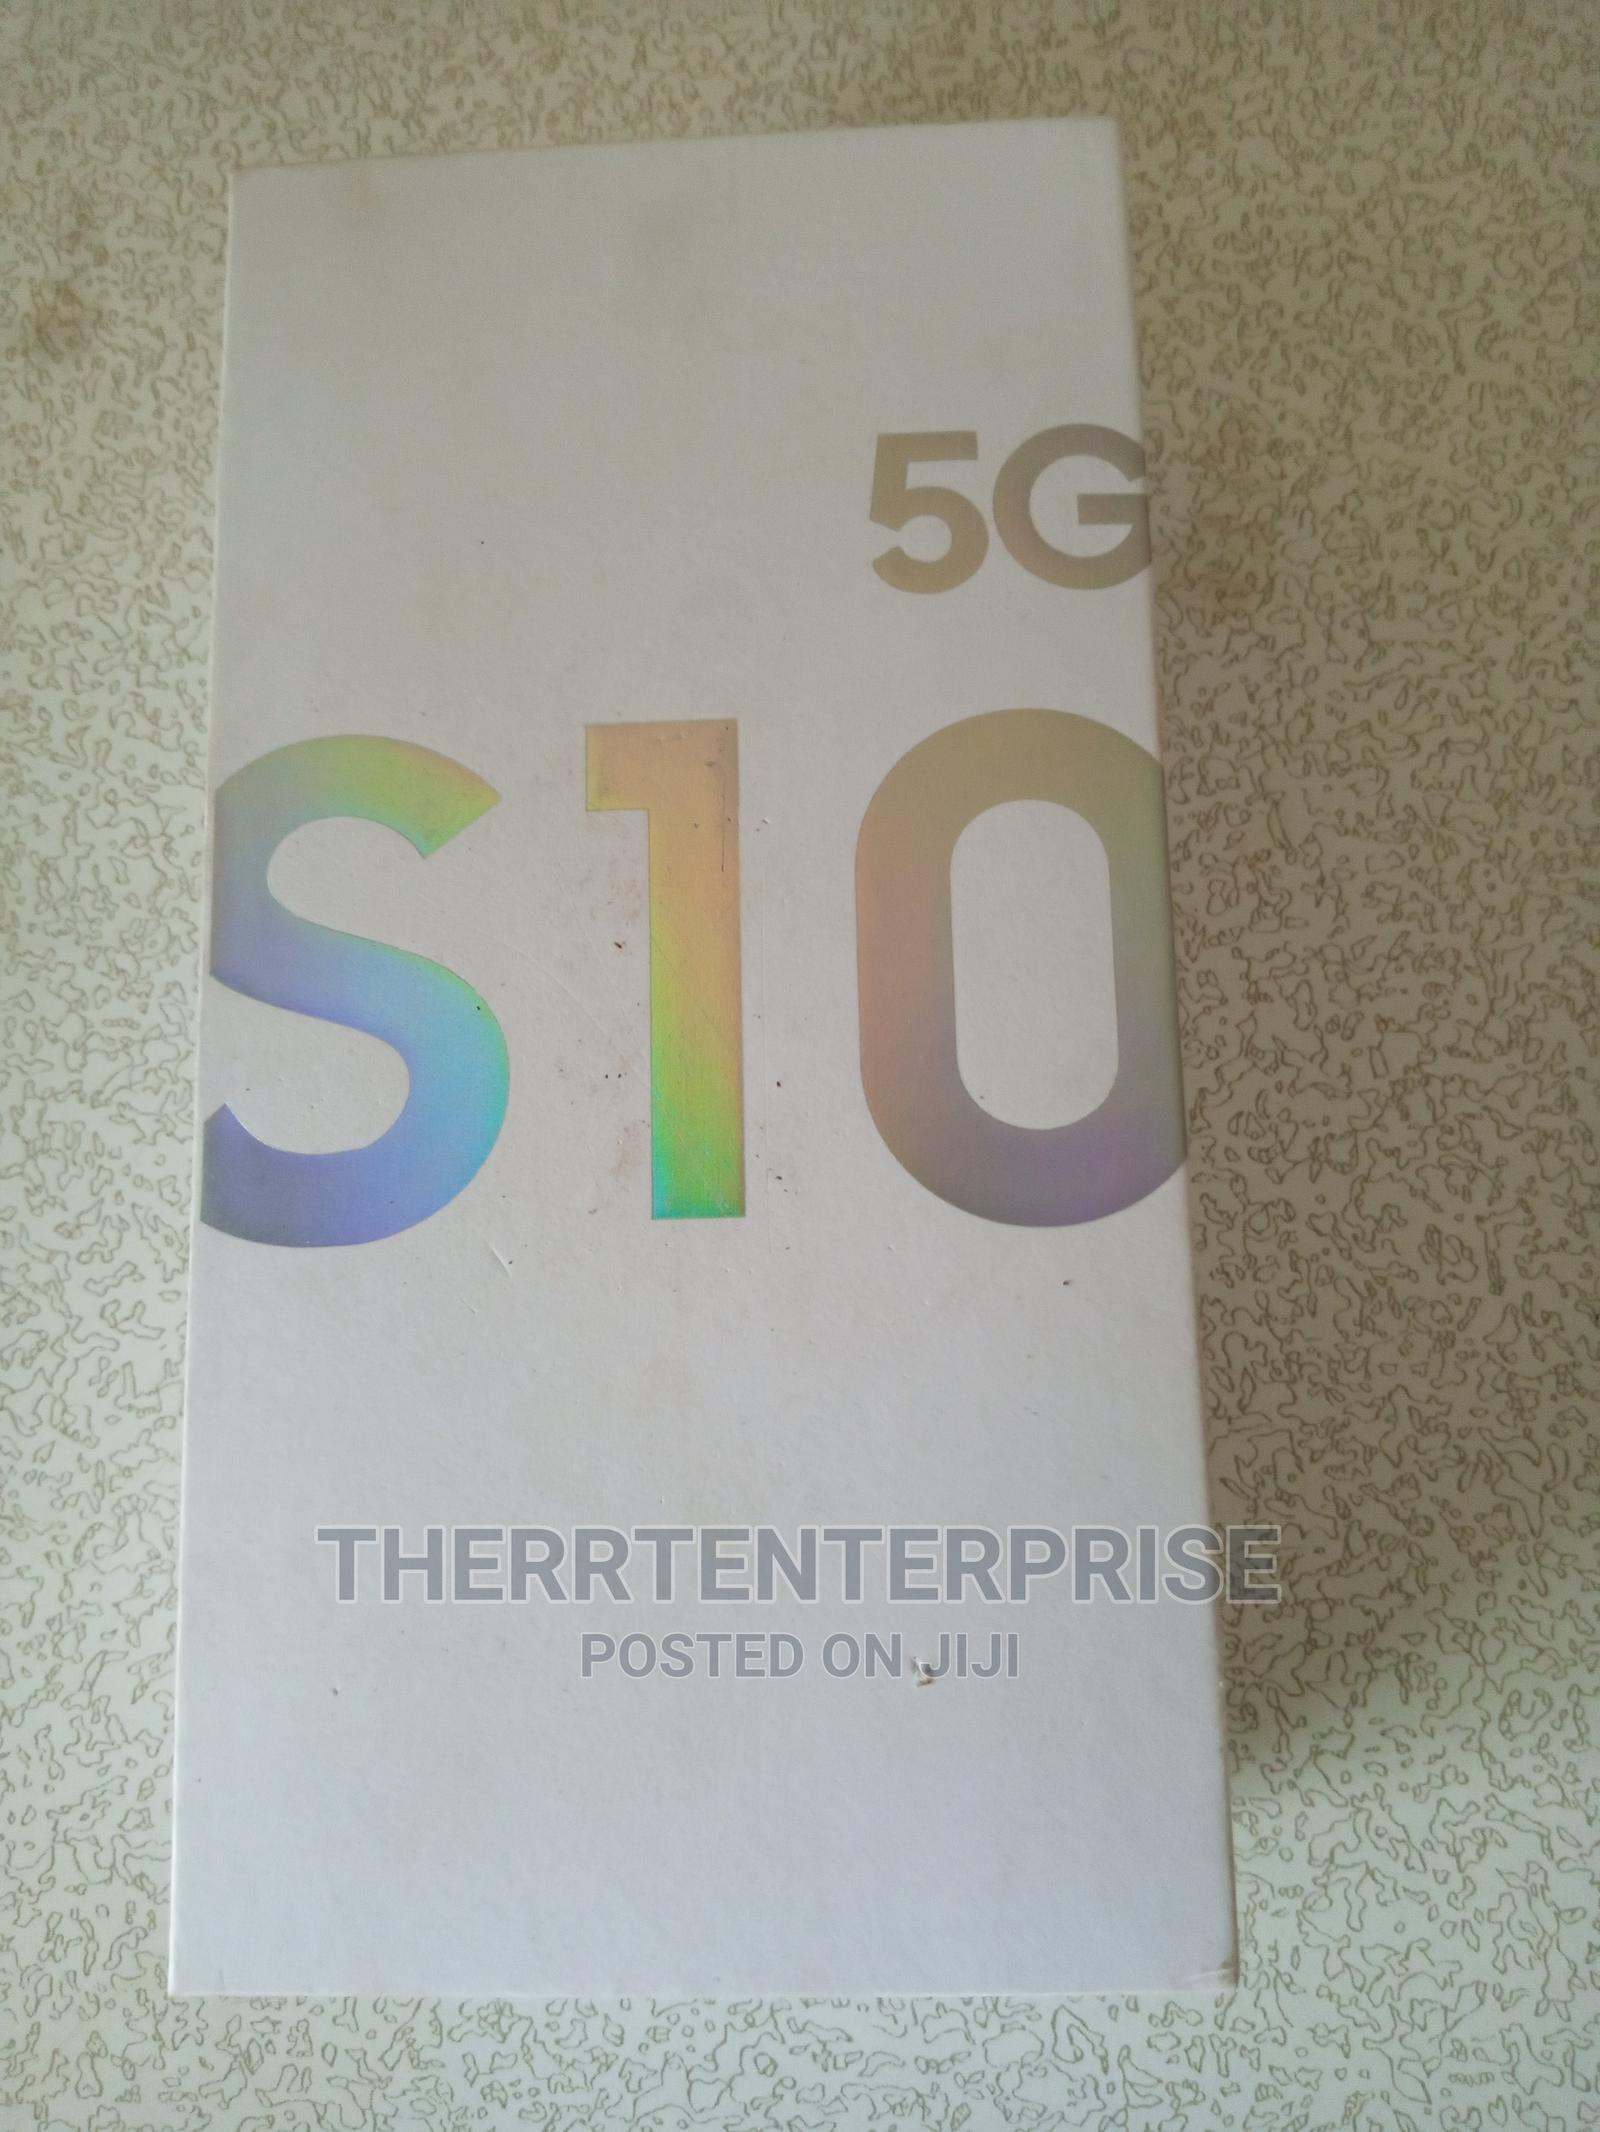 New Samsung Galaxy S10 5G 256 GB Silver | Mobile Phones for sale in Osogbo, Osun State, Nigeria